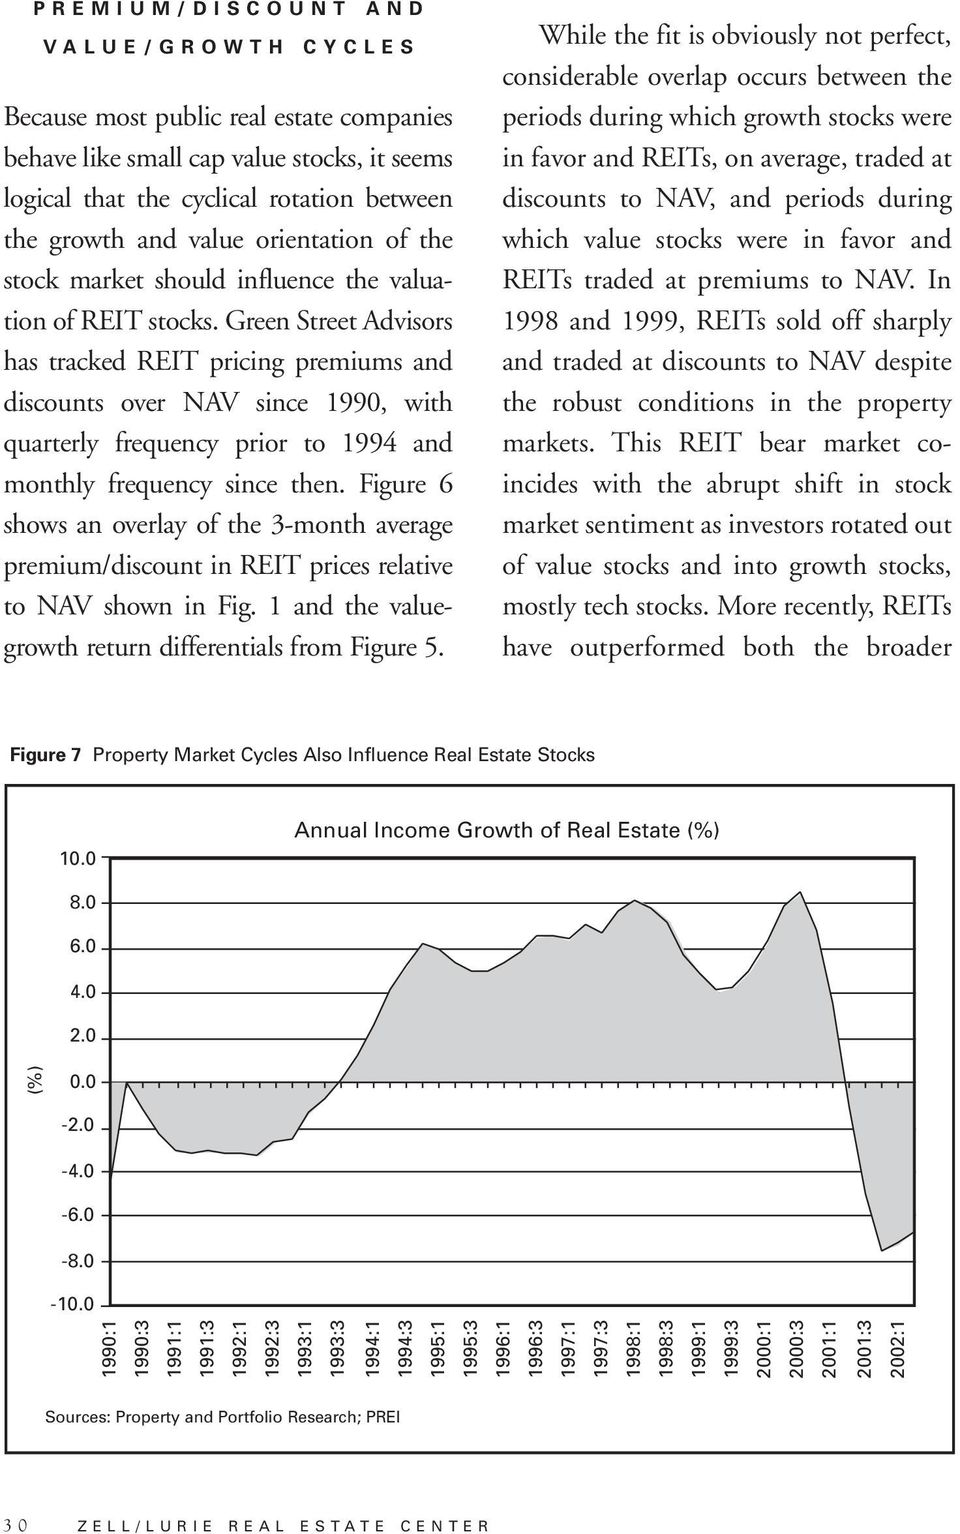 Green Street Advisors has tracked REIT pricing premiums and discounts over NAV since 1990, with quarterly frequency prior to 1994 and monthly frequency since then.